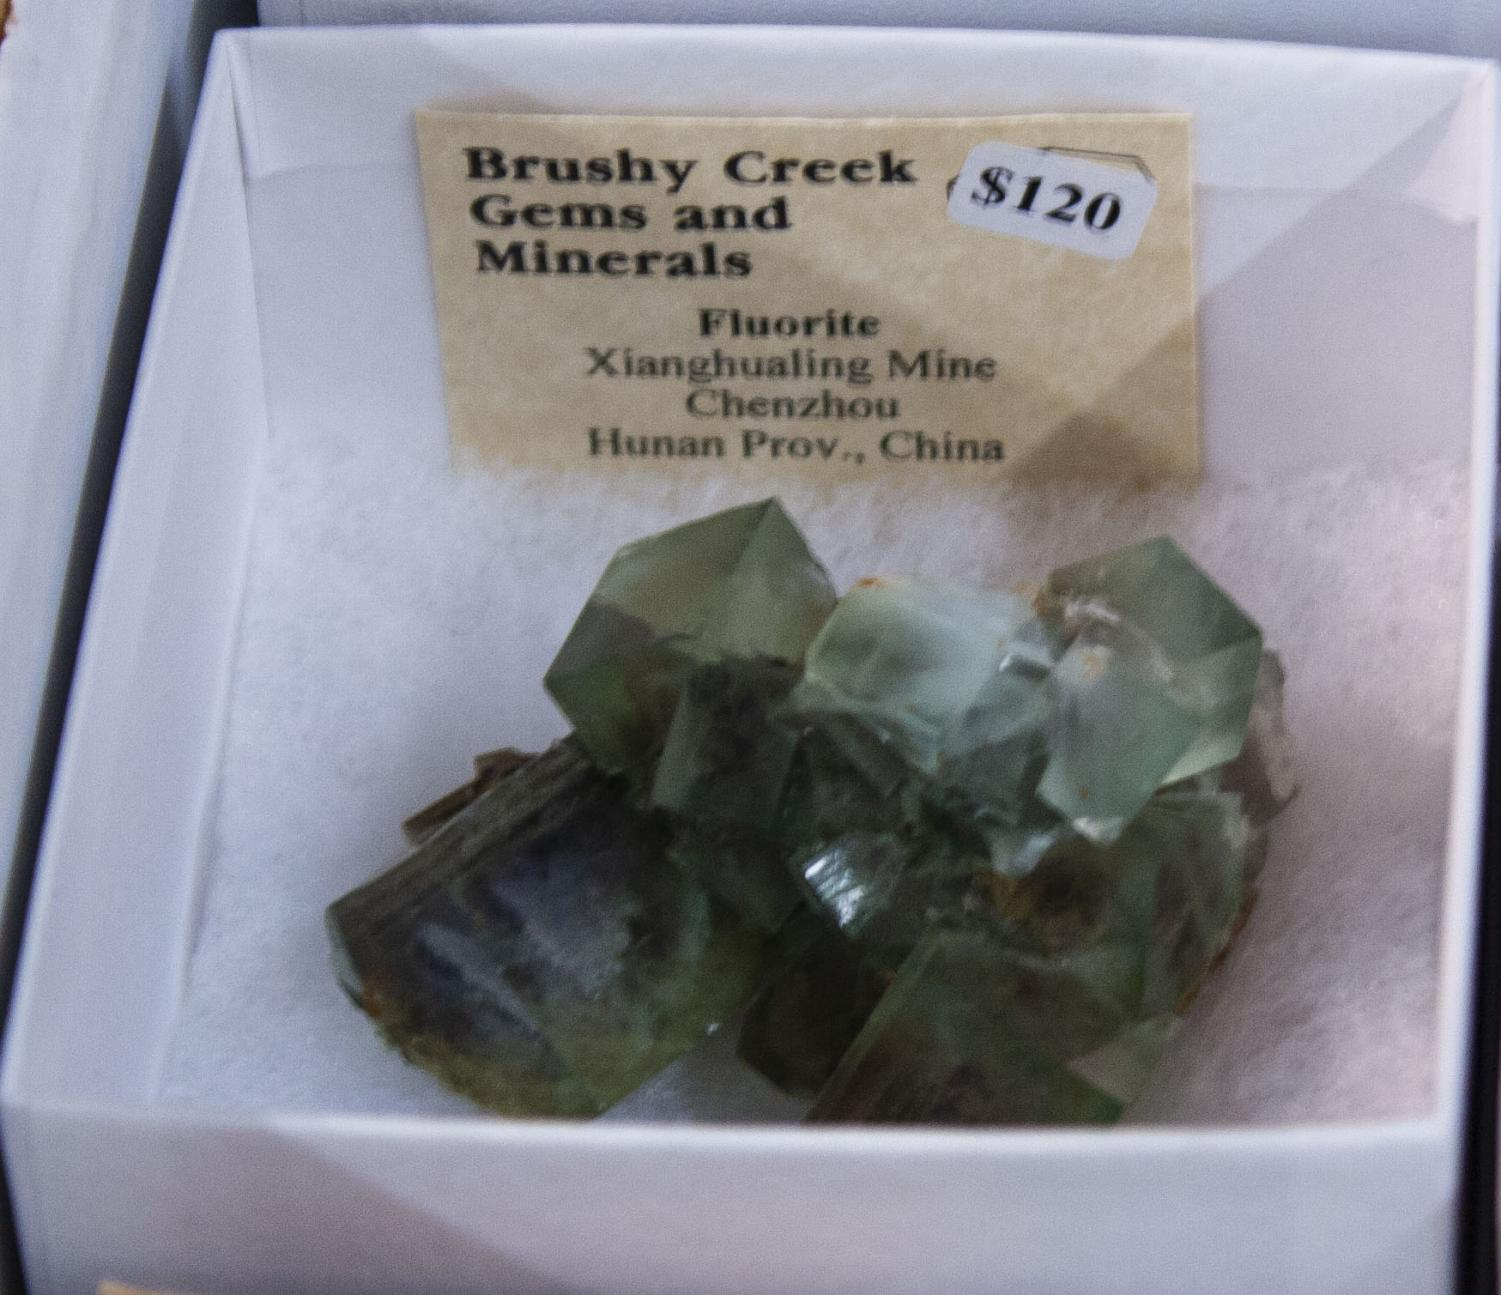 Brushy+Creek+Gems+and+Minerals+displayed+a+piece+of+fluorite+mined+in+China.+